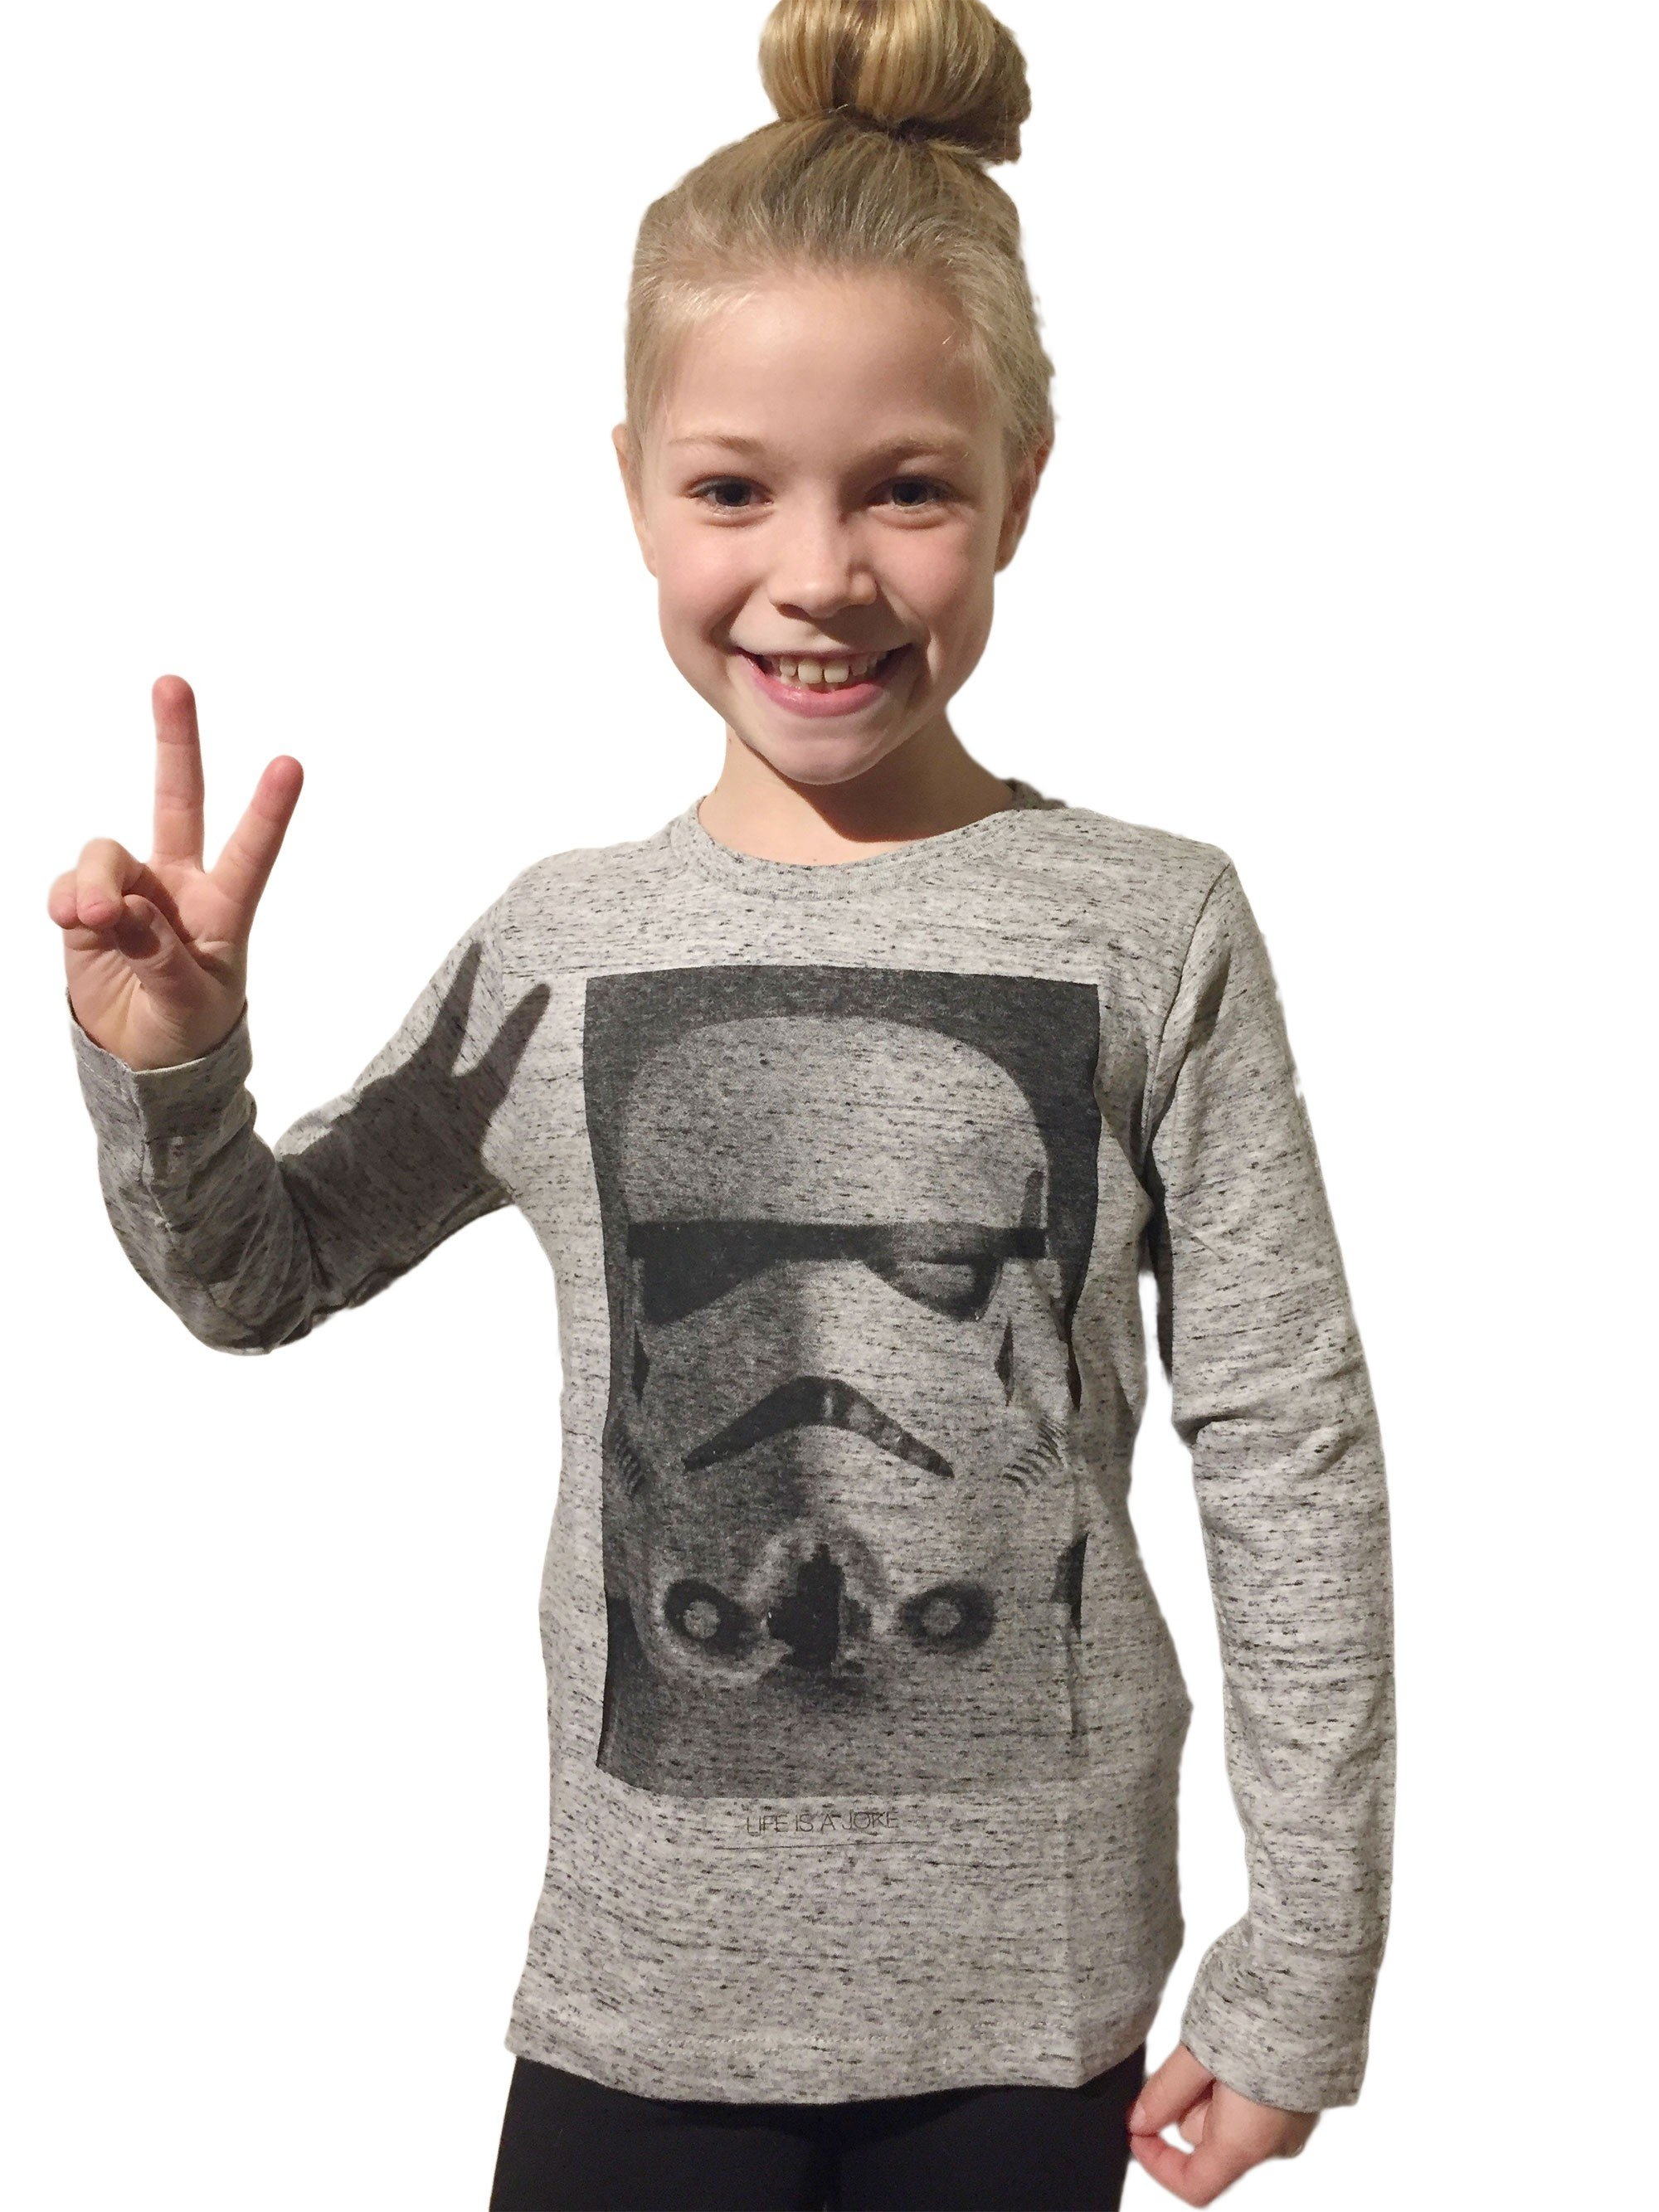 Little Eleven Paris - STORM TROOPER - Long Sleeve Tee